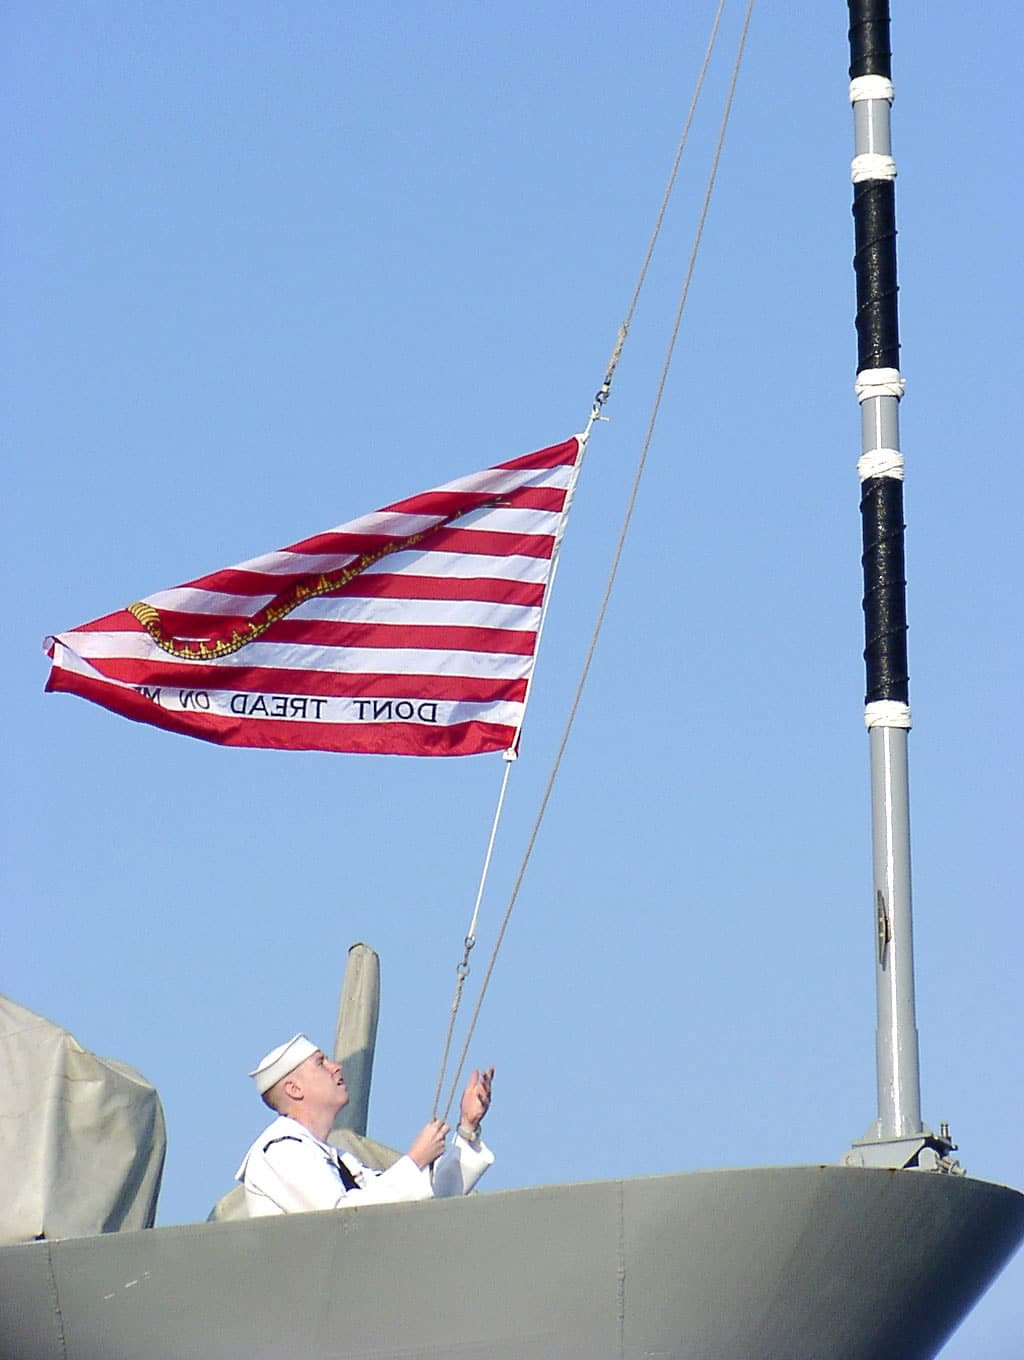 Operations Specialist 2nd Class Michael McKenna from Providence, R.I., raises the First Navy Jack flag for the first time at morning colors, on Sept. 11, 2002, aboard the guided missile cruiser USS Thomas S. Gates (CG 51).